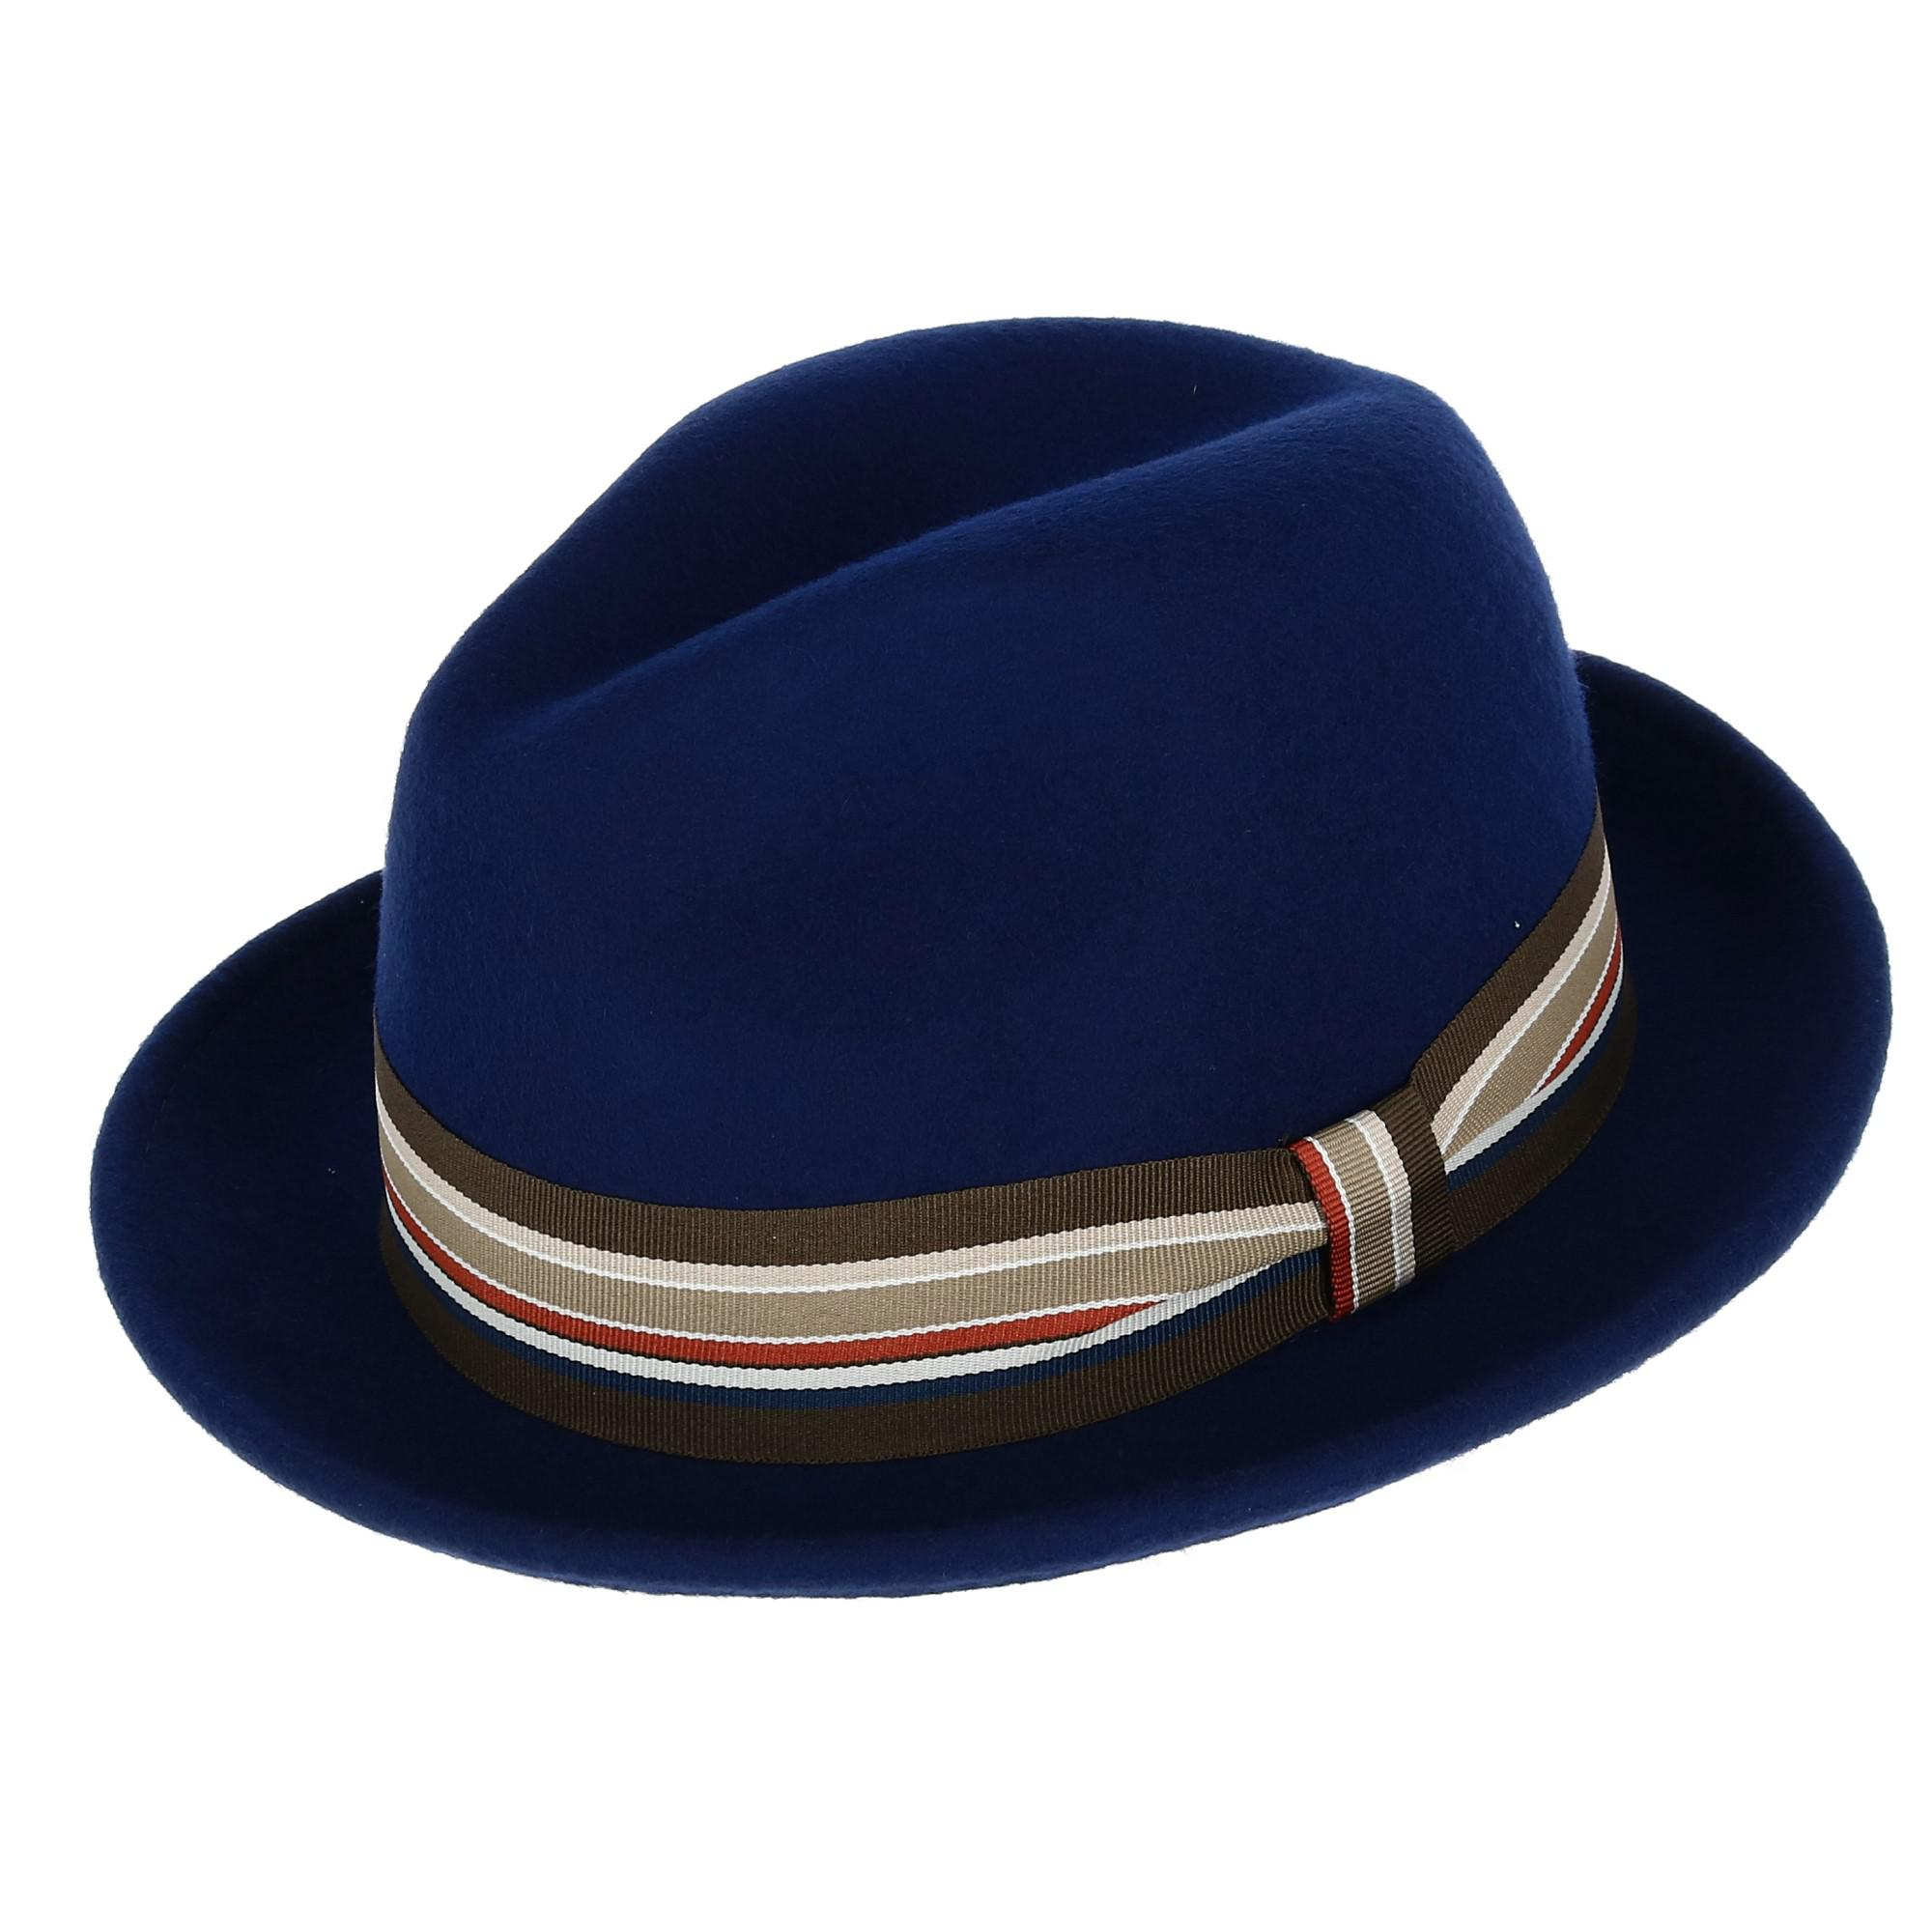 cae68970e751e Details about New Broner Men s Wool Felt Fedora with Striped Grosgrain  Ribbon Band